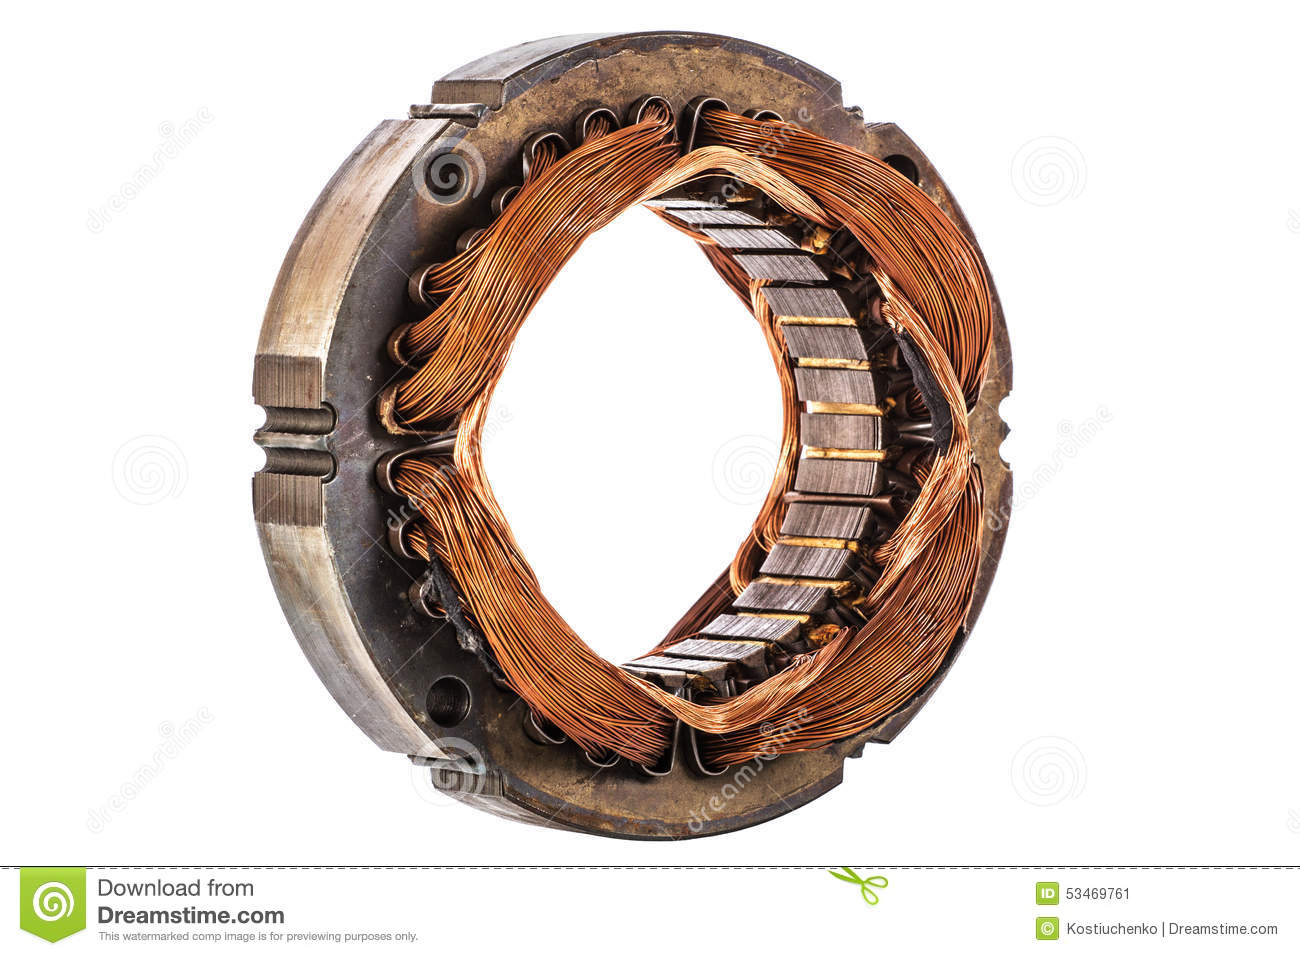 Stator Of The Electric Motor Isolated On White Background